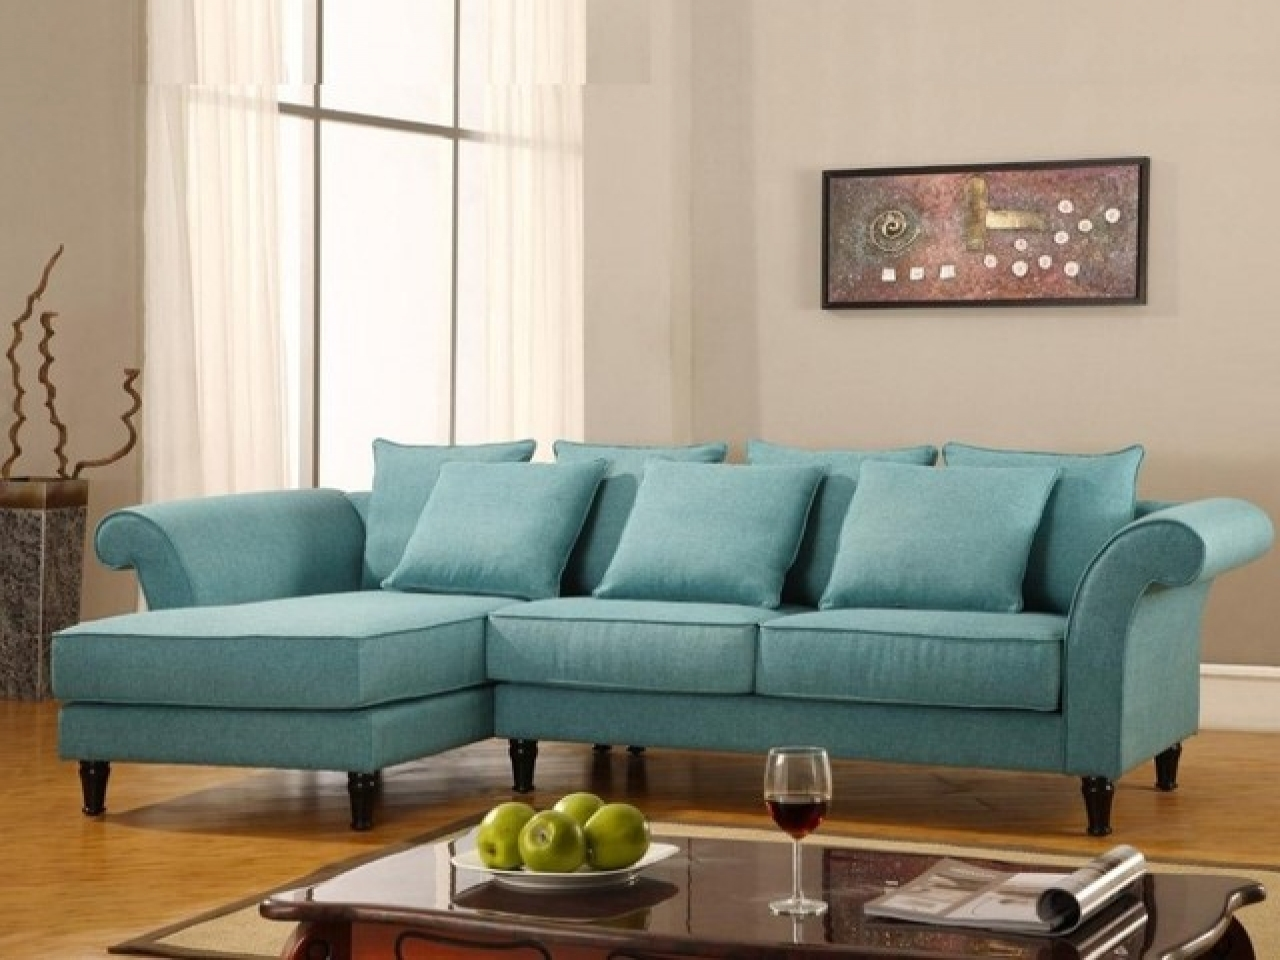 Sofa : Turquoise Shell Sofa Cover Leather Sleeper Sofaturquoise Dark pertaining to Turquoise Sofas (Image 5 of 10)